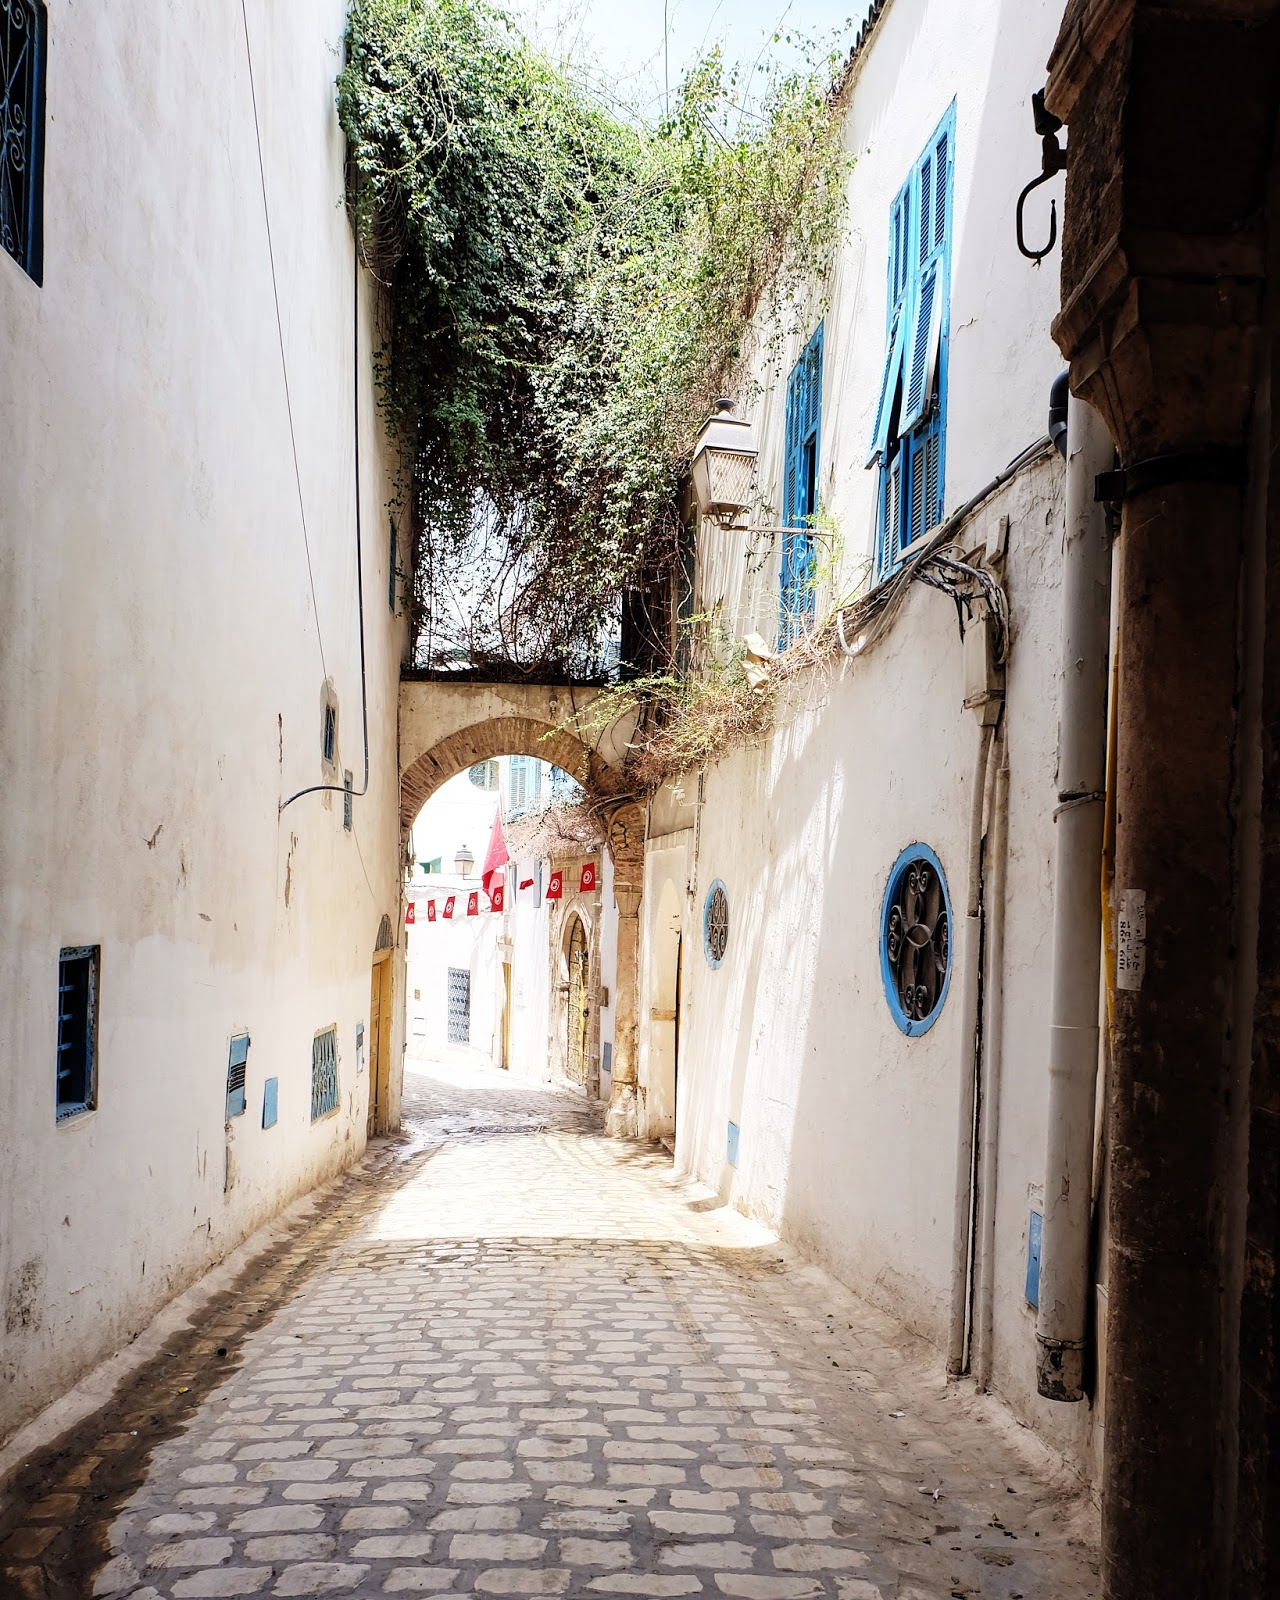 Alley ways in Tunis, Tunisia